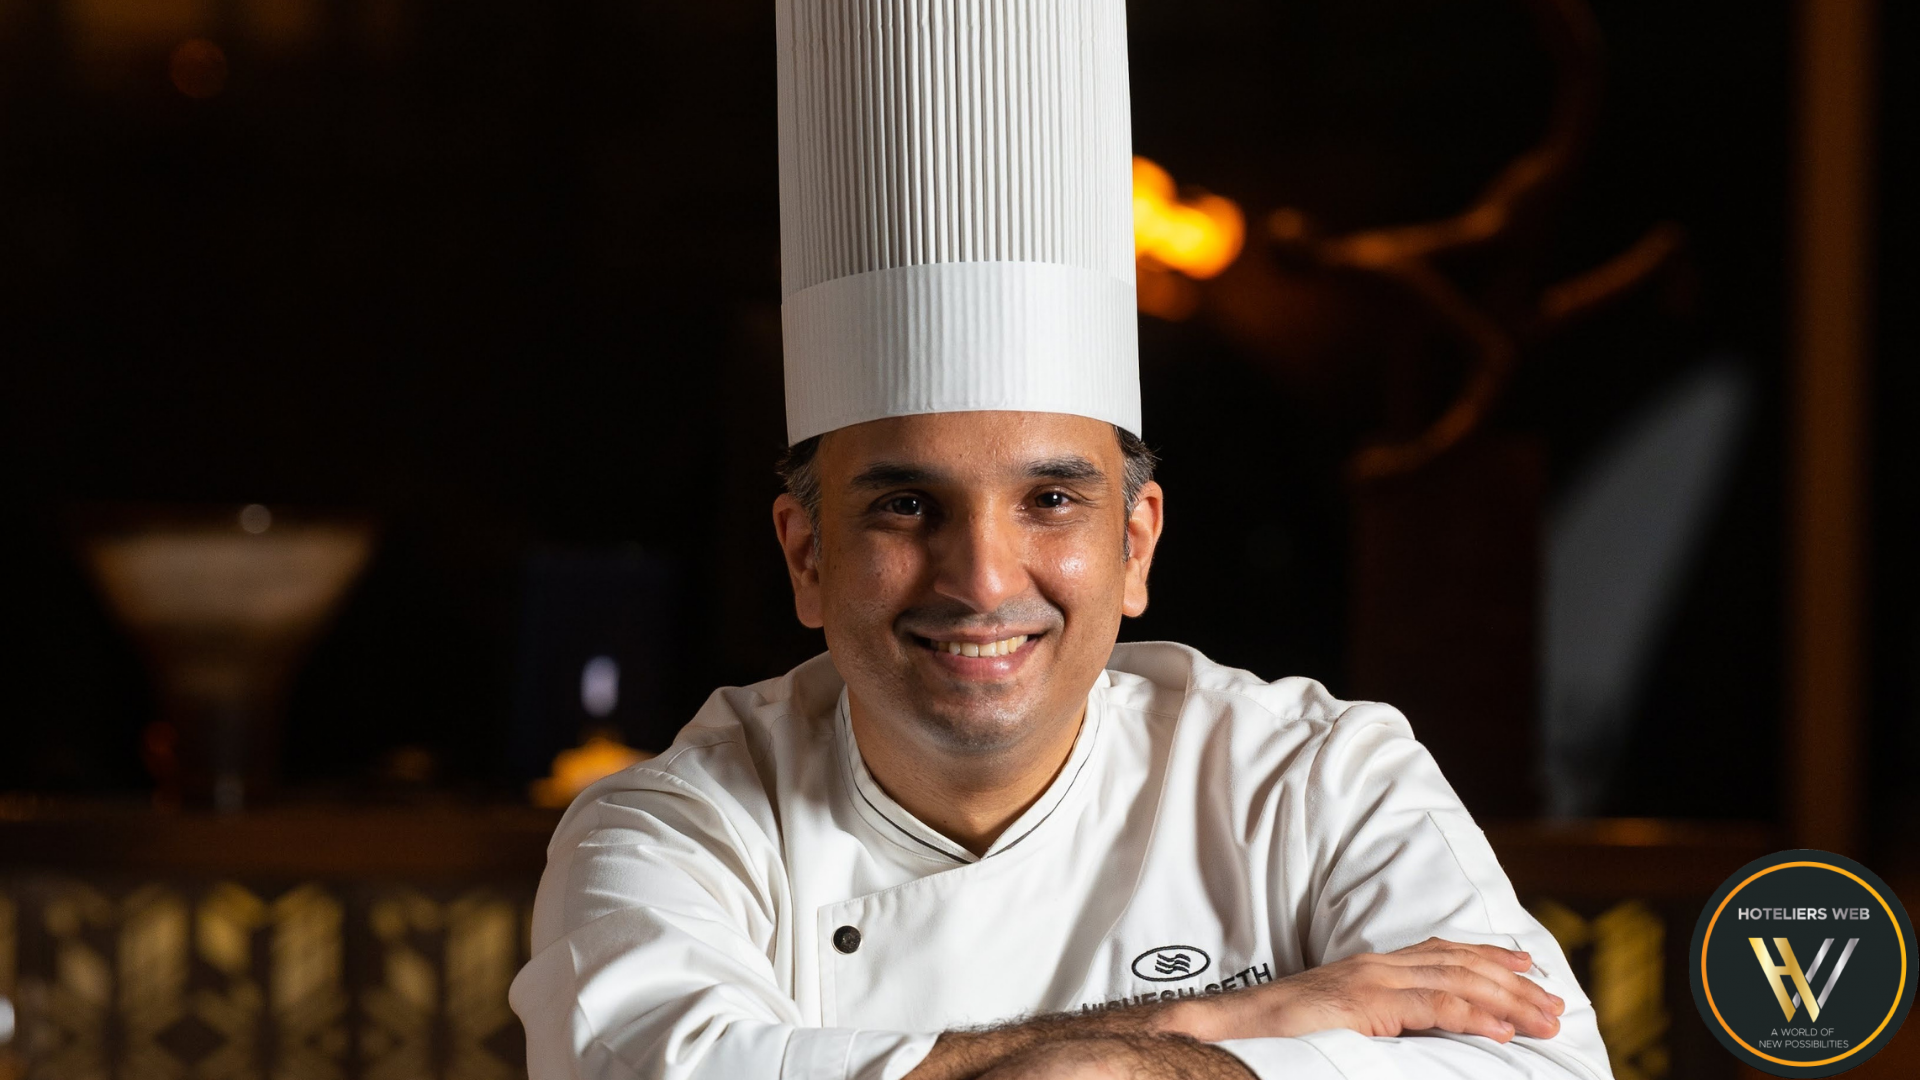 Nishesh Seth appointed as the Executive Chef at Crowne Plaza Jaipur